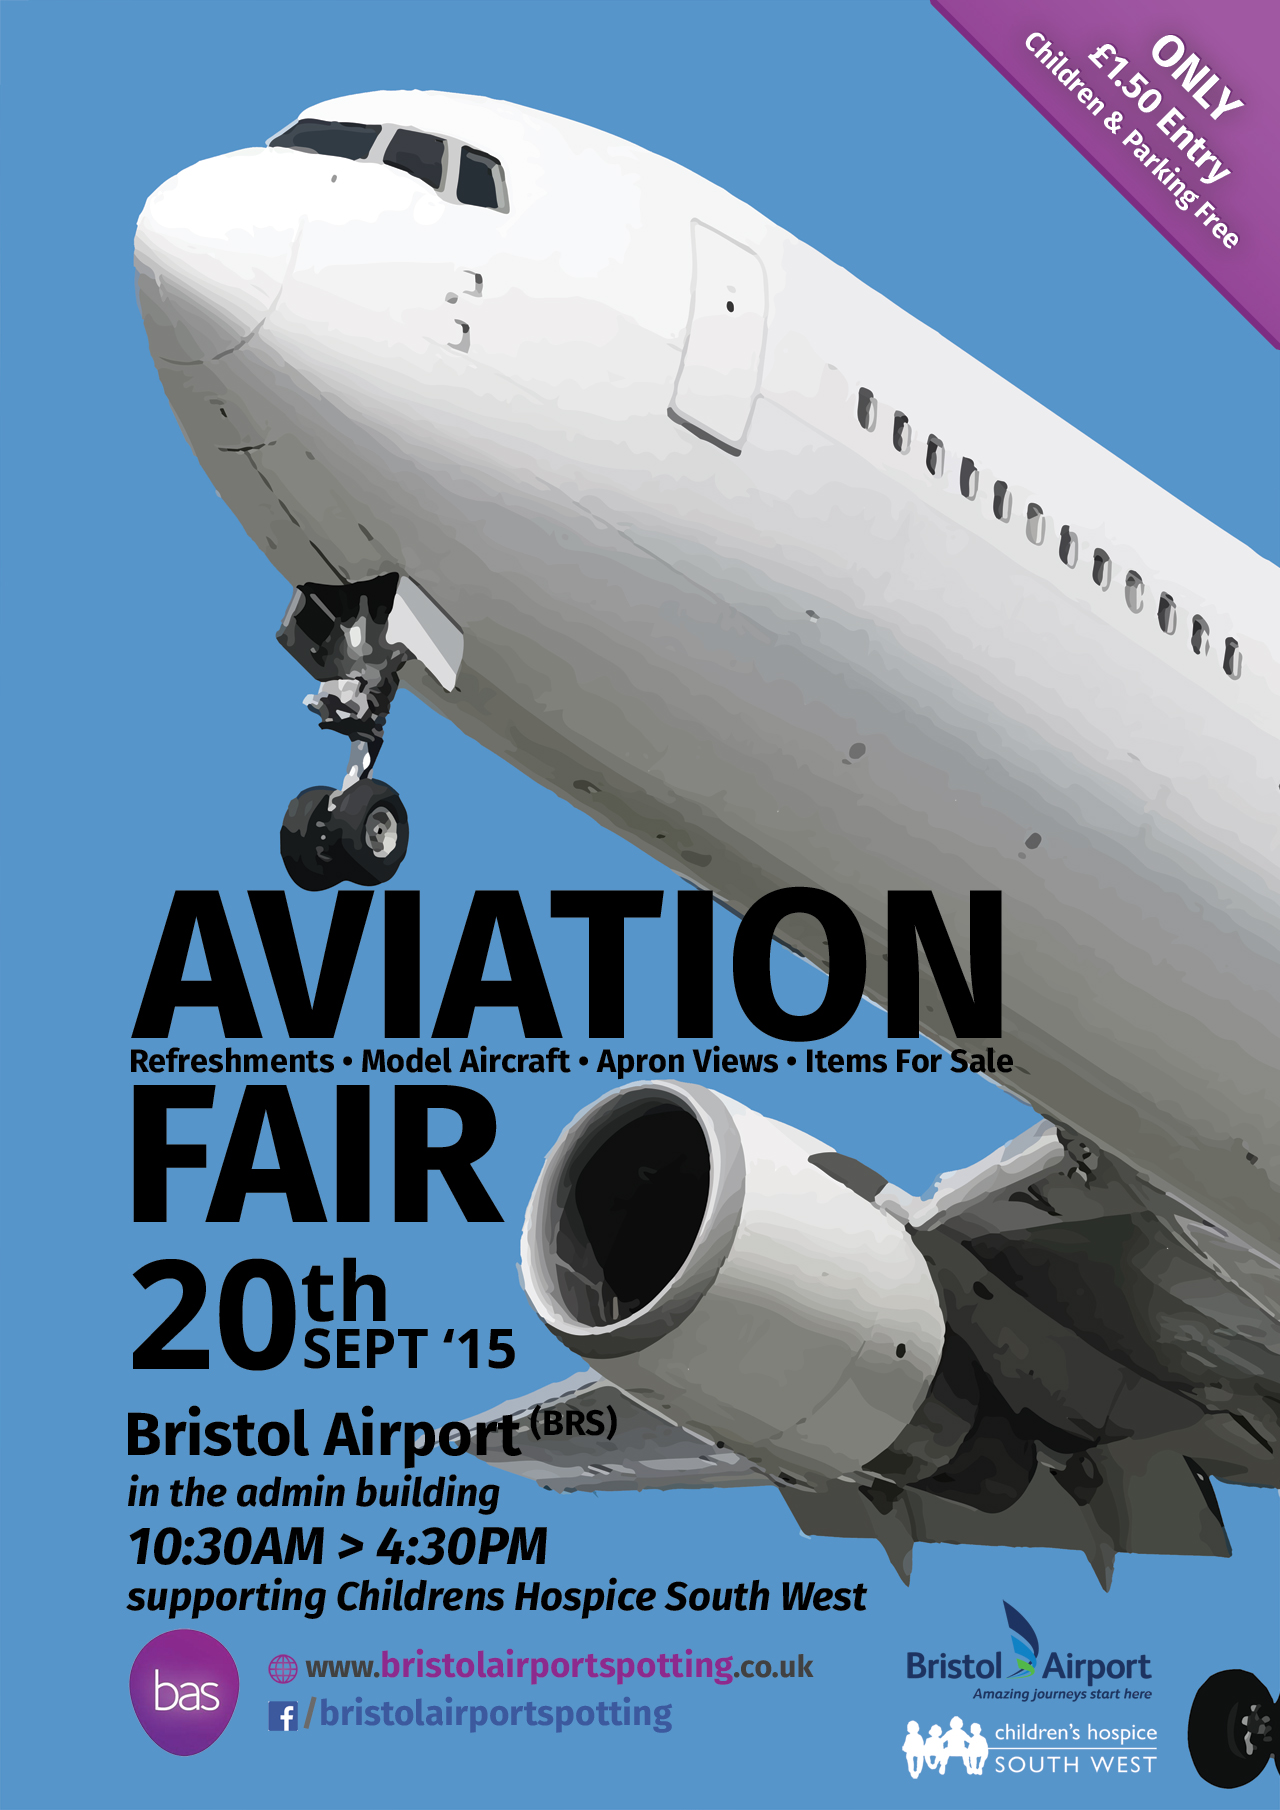 Bristol Airport Aviation Fair